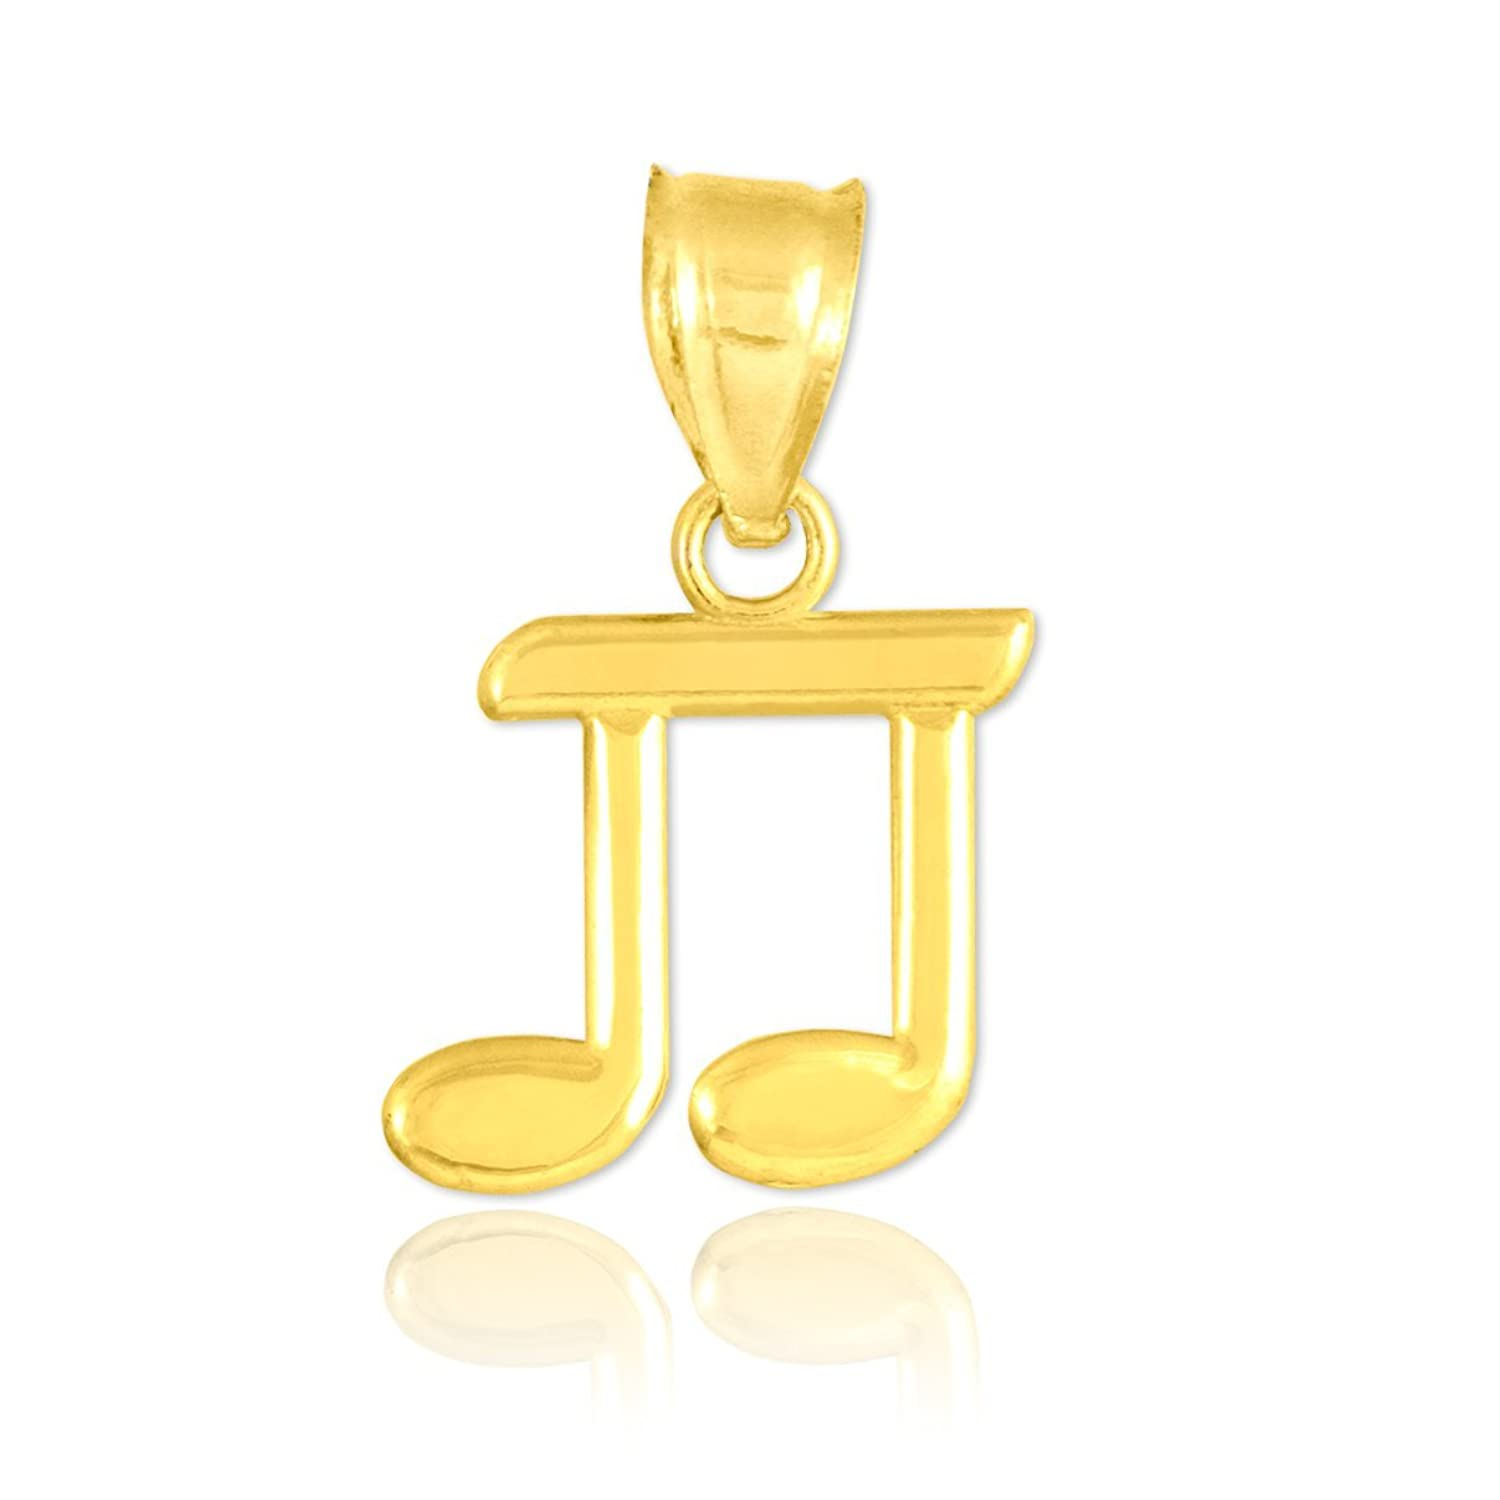 High Polish 10k Yellow Gold Music Charm Beamed Eighth Note Pendant